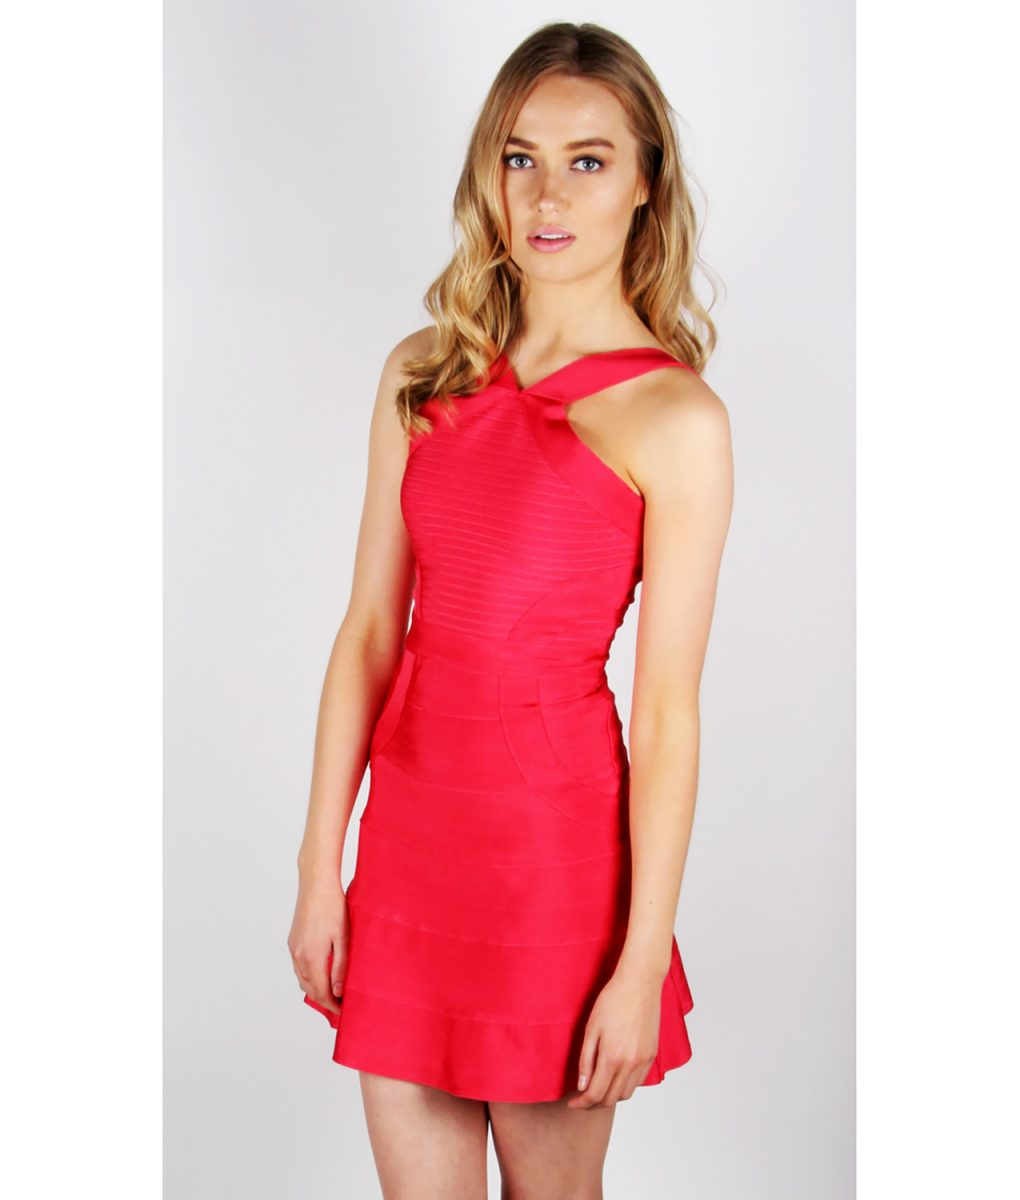 Alila Red Bodycon Dress By Wow Couture.